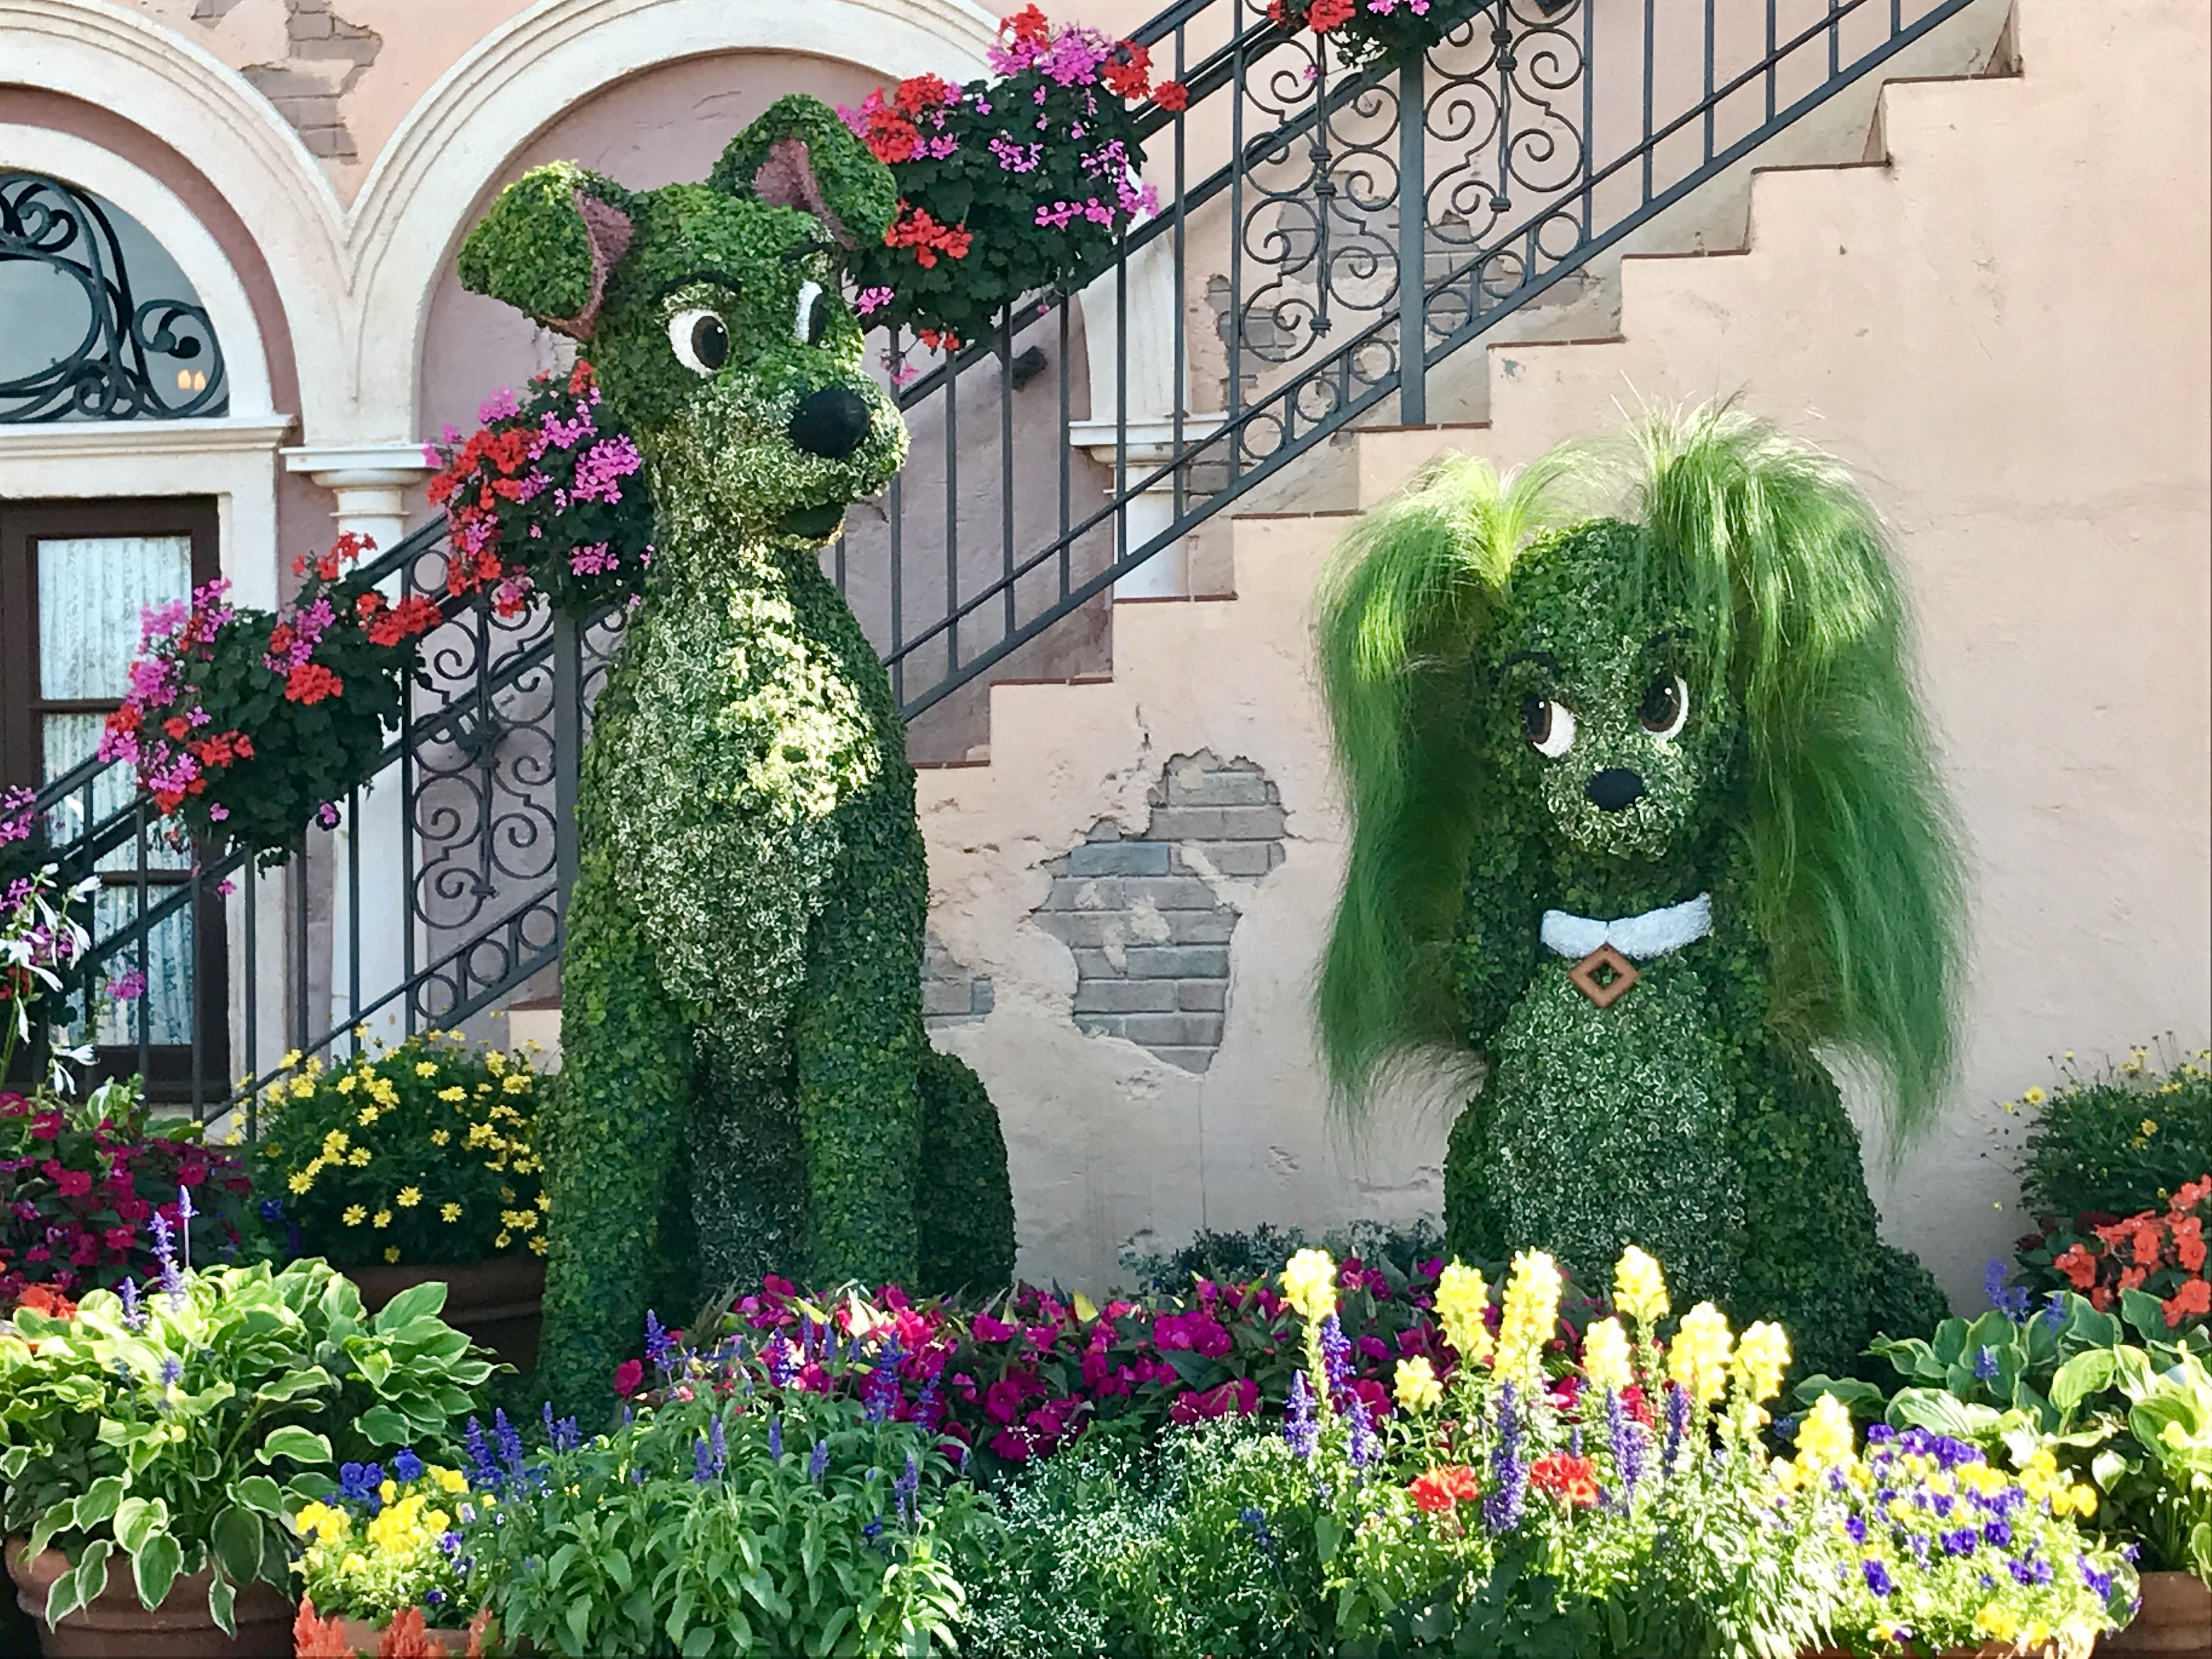 Lady & the Tramp at Epcot's 2018 Flower and Garden Festival